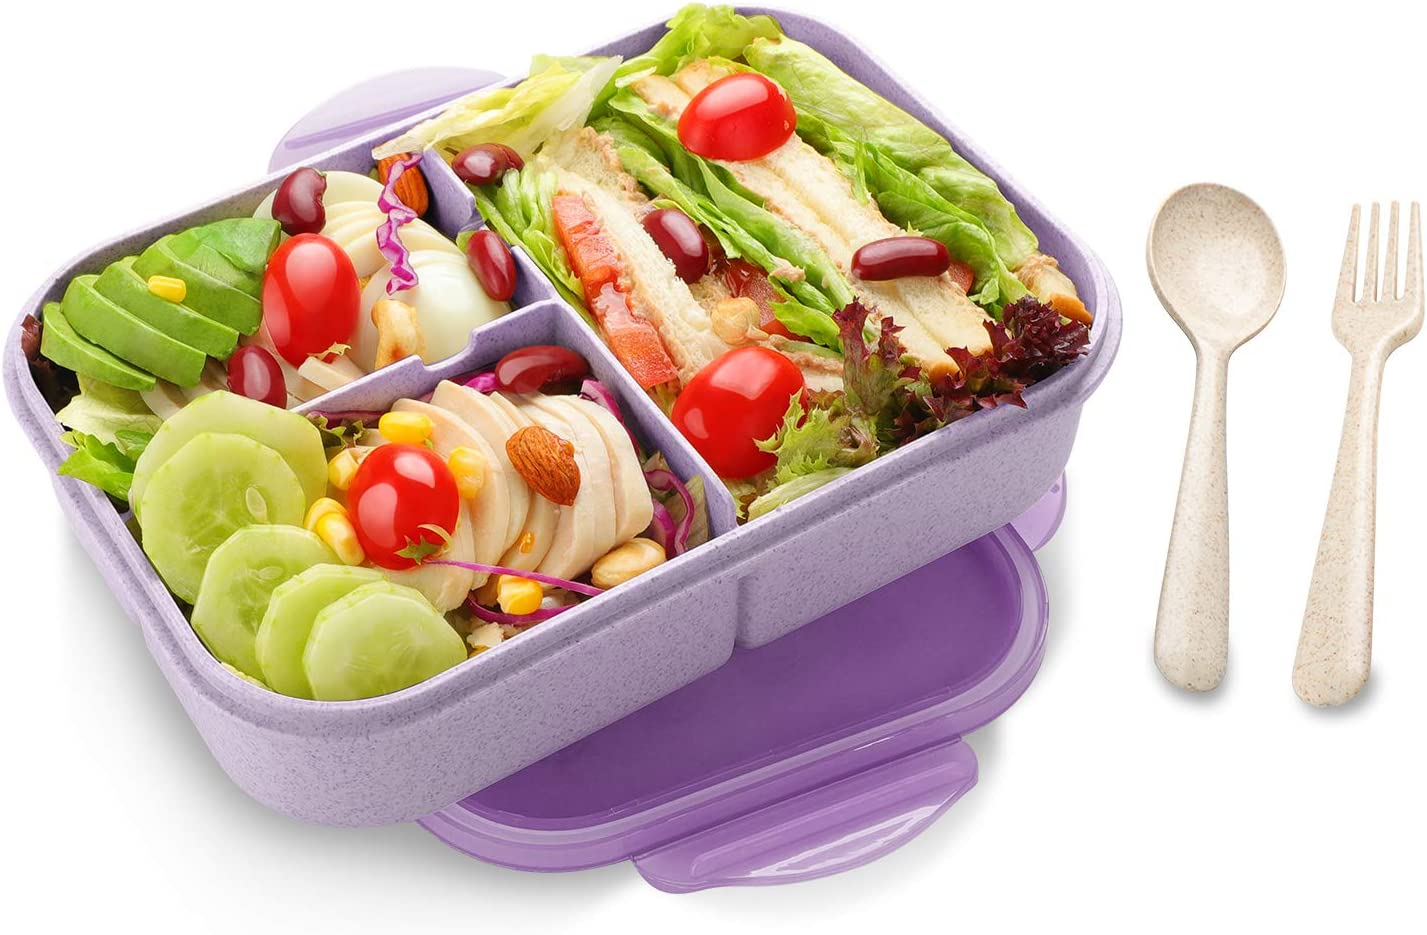 Bento Lunch Box for Kids & Adults, SIPU Leakproof and Shockproof Lunch Containers with Extra 2 silicone Seals, Microwave/Dishwasher Safe, BPA-Free and Food-Safe, Made from Wheat Fiber (Purple)